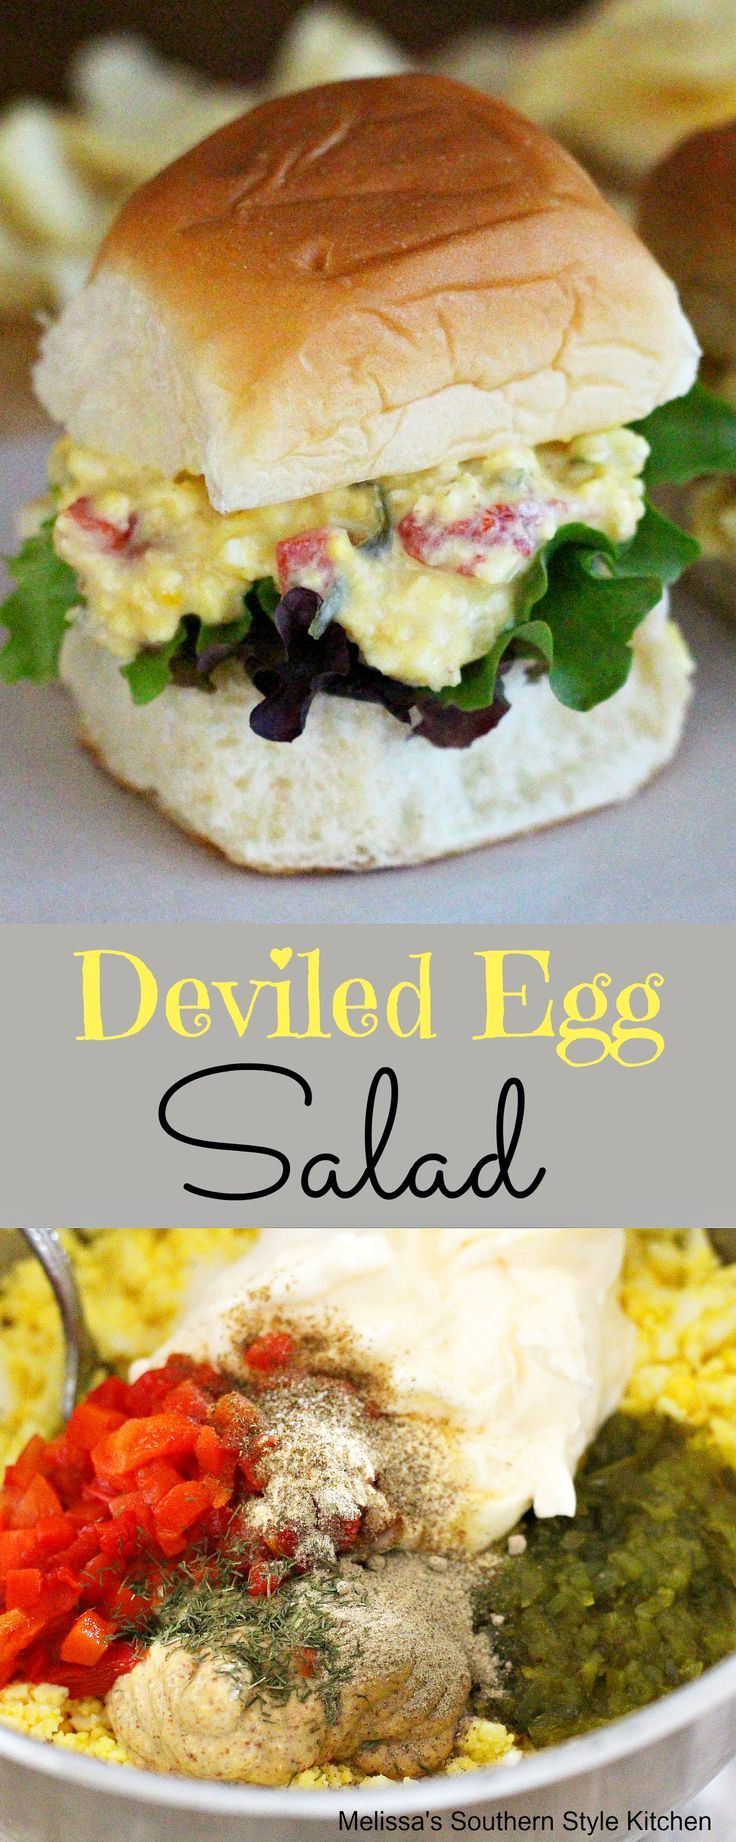 15733 best recipes from our favorite bloggers images on for How to make homemade deviled egg potato salad